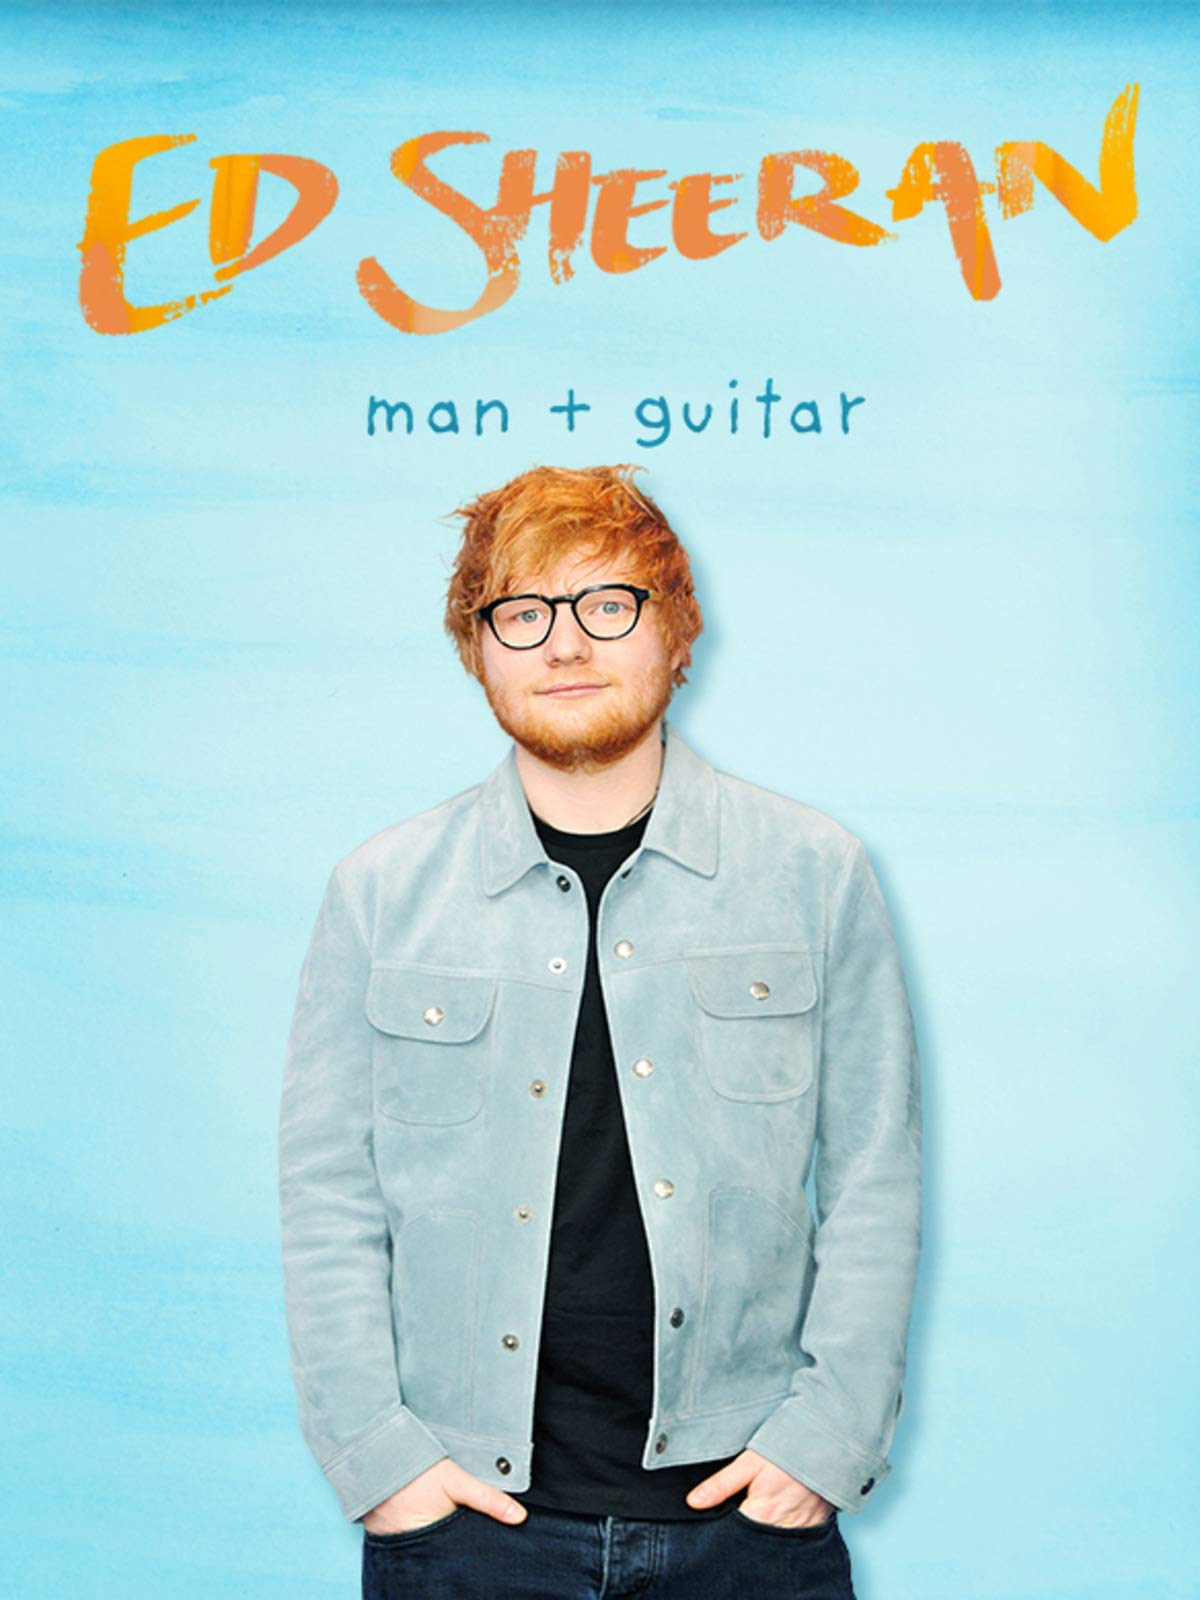 Ed Sheeran: Man + Guitar on Amazon Prime Video UK